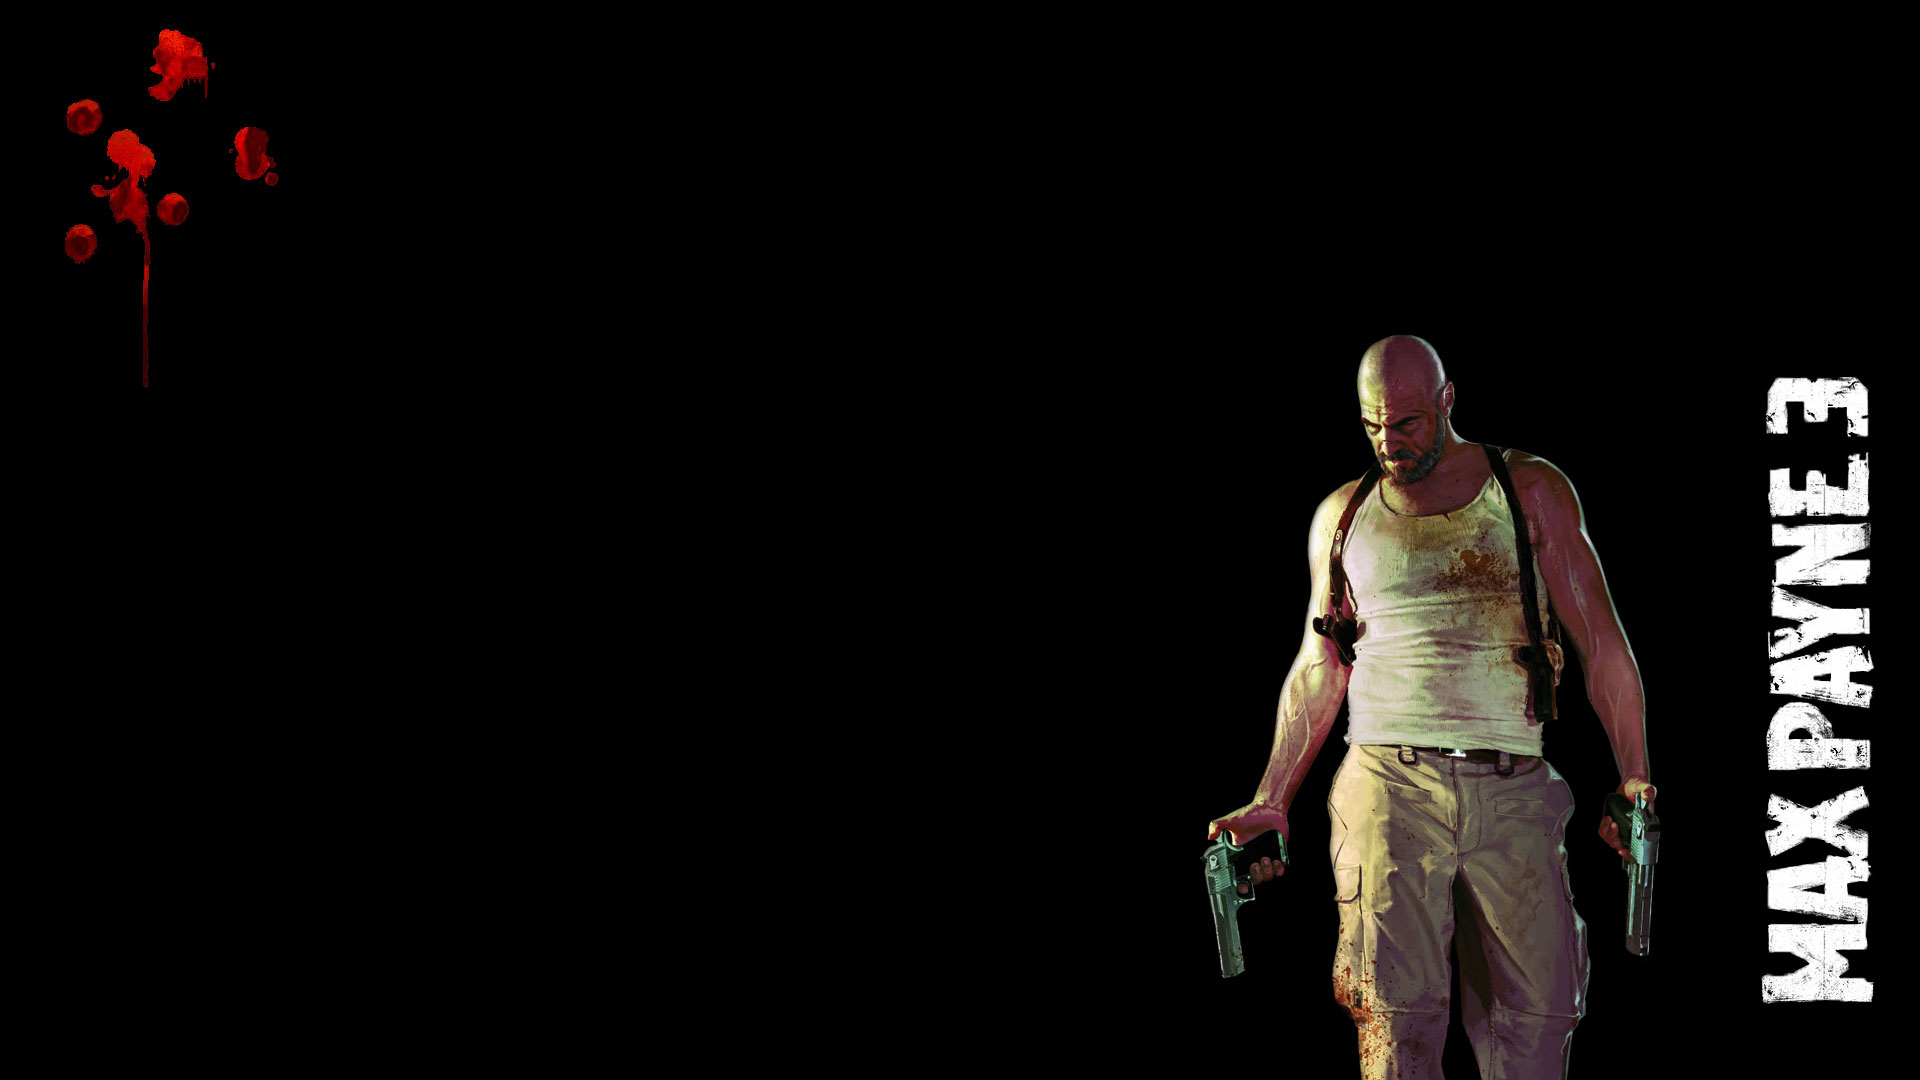 Max Payne 3 Wallpapers in HD Page 2 1920x1080